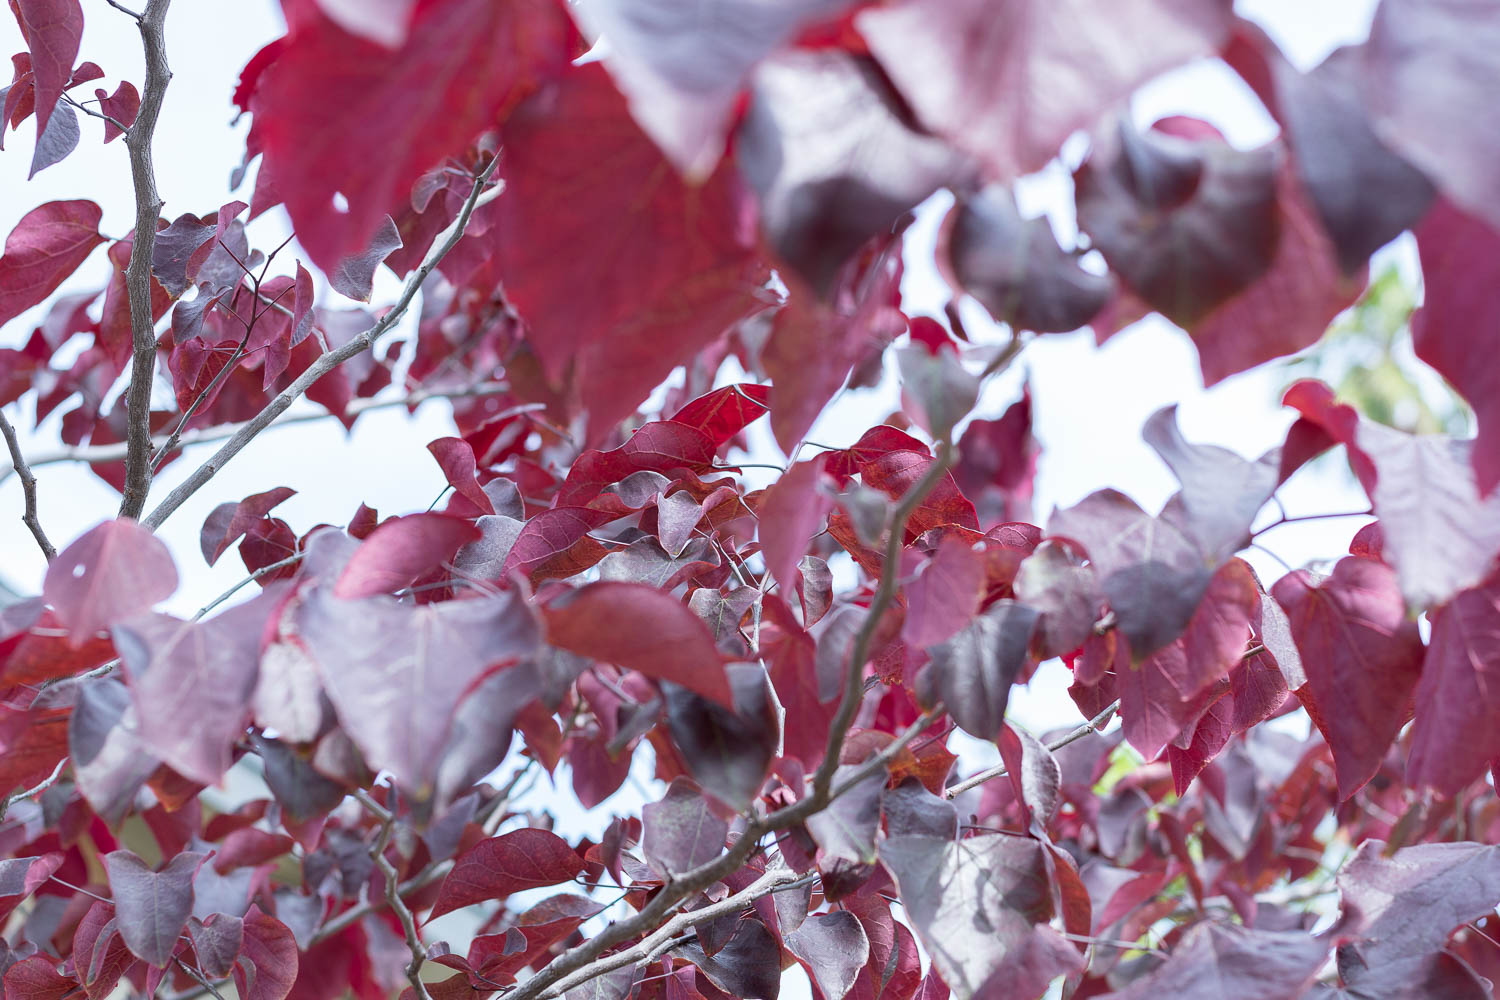 Western Redbud - Ok, I mean it when I say that this is my favorite tree. It seriously amazes me. It loses all of its leaves in the winter, then come early spring lovely clusters of pink flowers bloom all along the branches (click the button below to see!), then the flowers fall off and tiny purple-red heart-shaped leaves start to fill in. As the season turns to summer, the leaves turn green, and then orange, and then yellow by fall when they drop to the ground. San Diego doesn't get much in the way of leaves changing, so it's a treat to have this one do just that - and it's native. But the kicker is those pink flowers - it's so cool to see the branches covered in florals without any leaves.